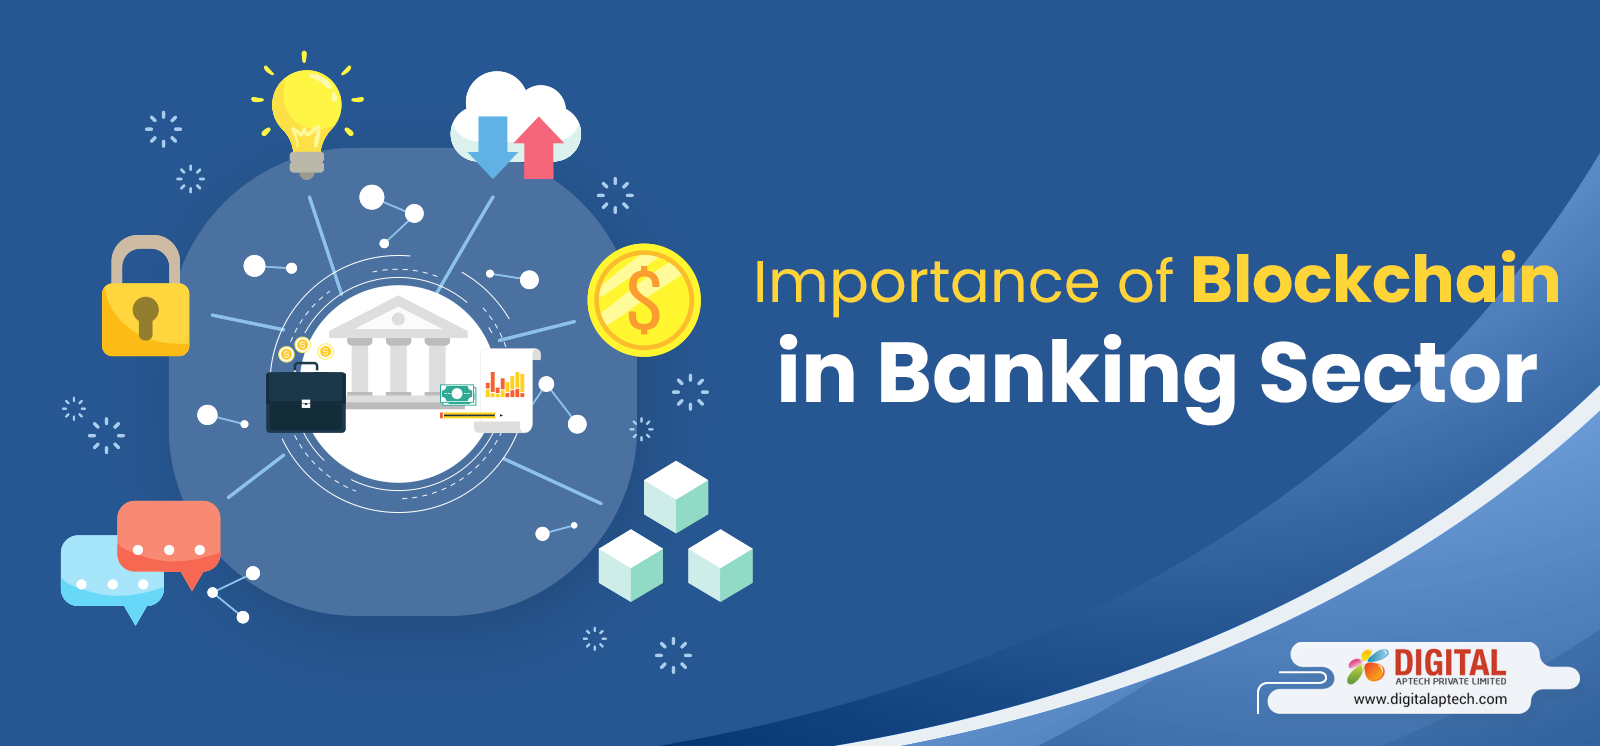 Why is Blockchain Important in Banking Sector?